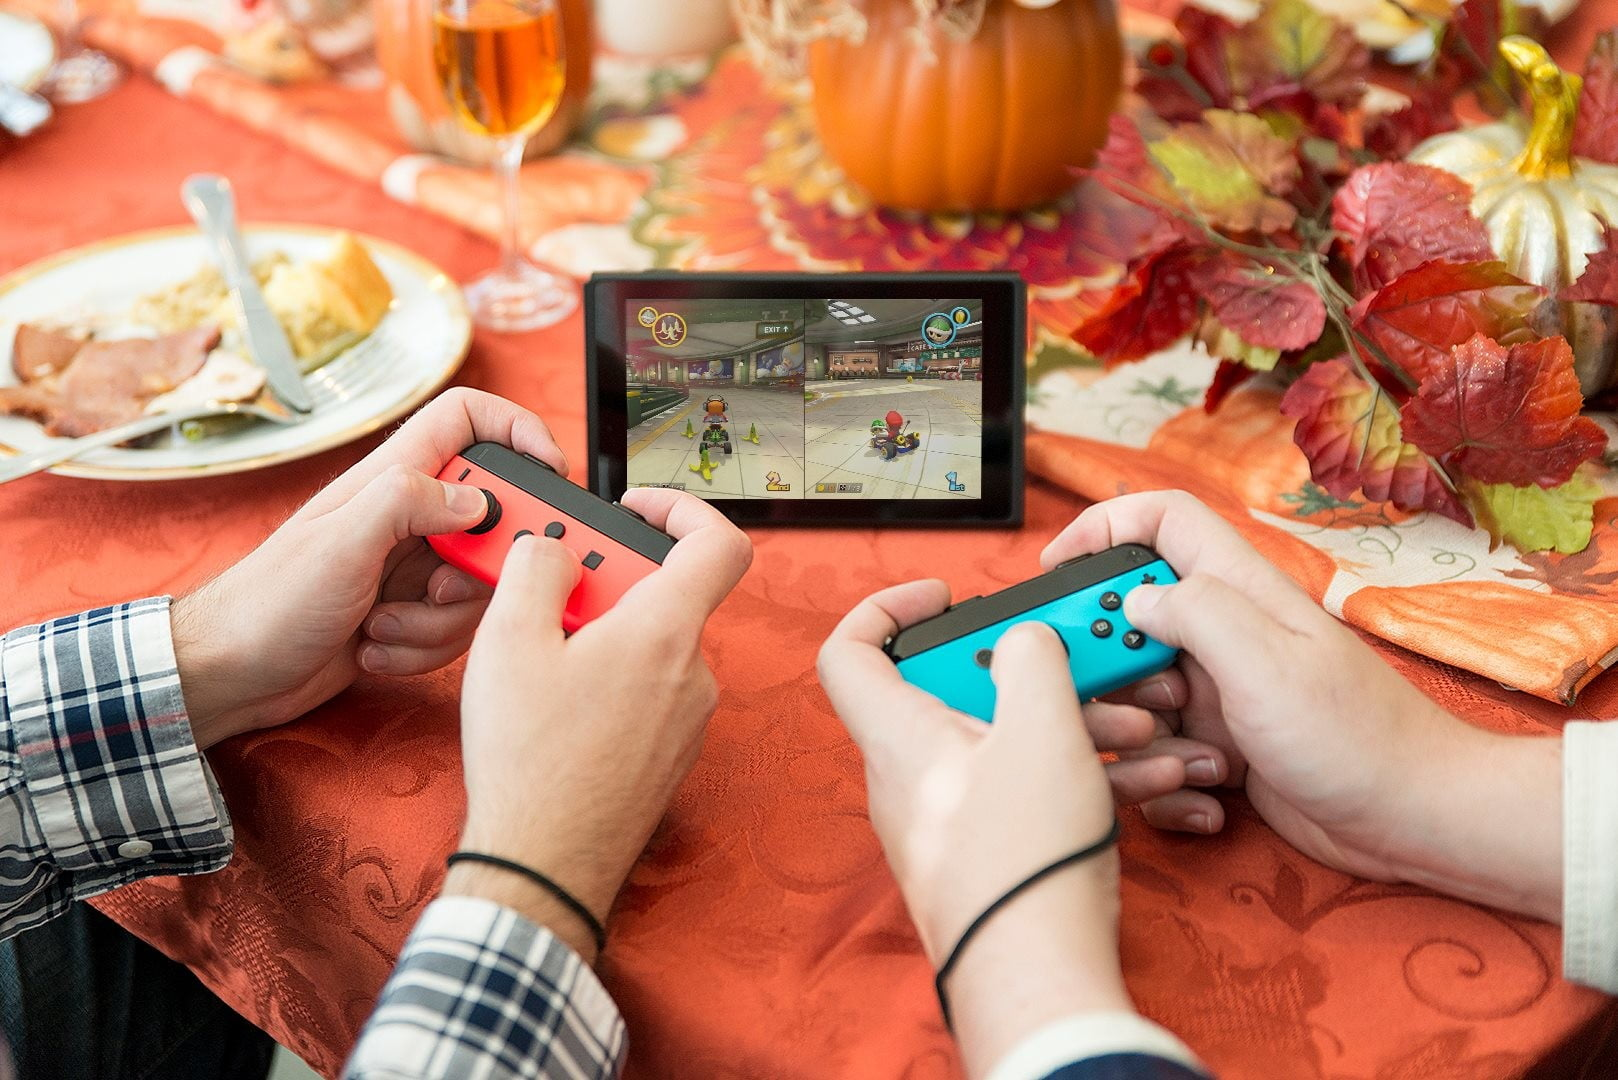 Nintendo Switch Tips And Tricks What Every Owner Must Know The Points Are Just An Off On To Turn Power Wi Fi Save Battery Why We Buy Games Twice Mario Kart Lifestyle Portability